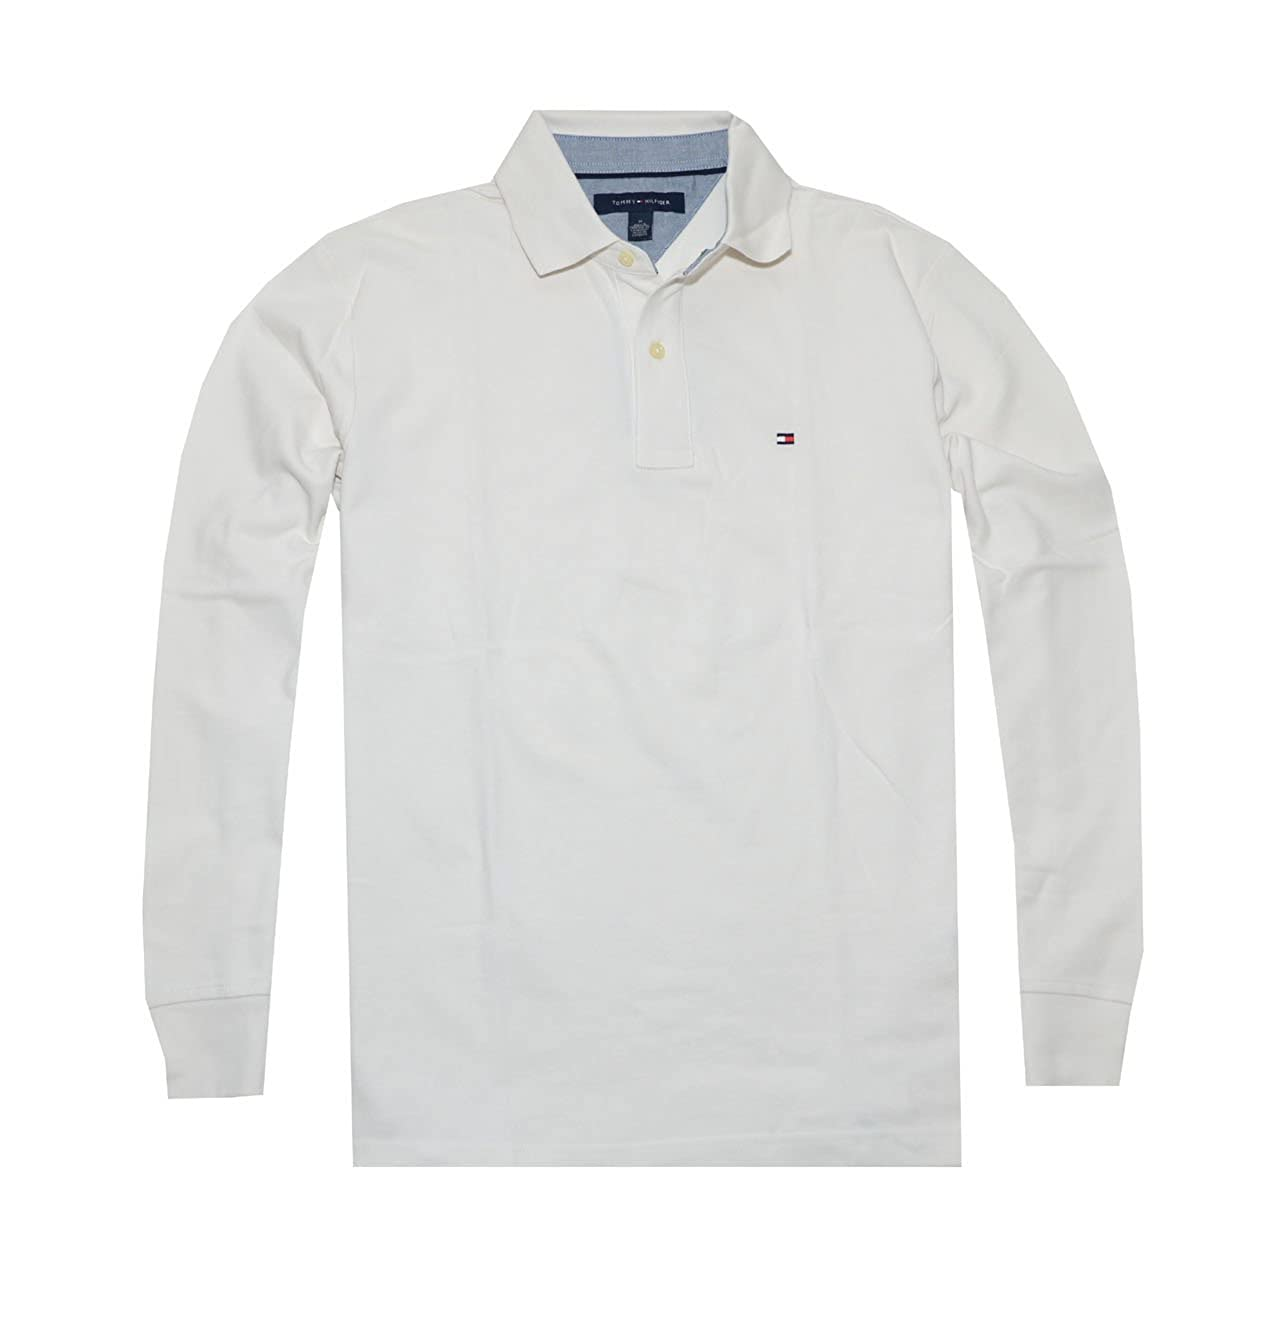 9880b1ec2 Amazon.com: Tommy Hilfiger Men Classic Long Sleeve Logo Polo T-shirt (S,  Off white): Clothing